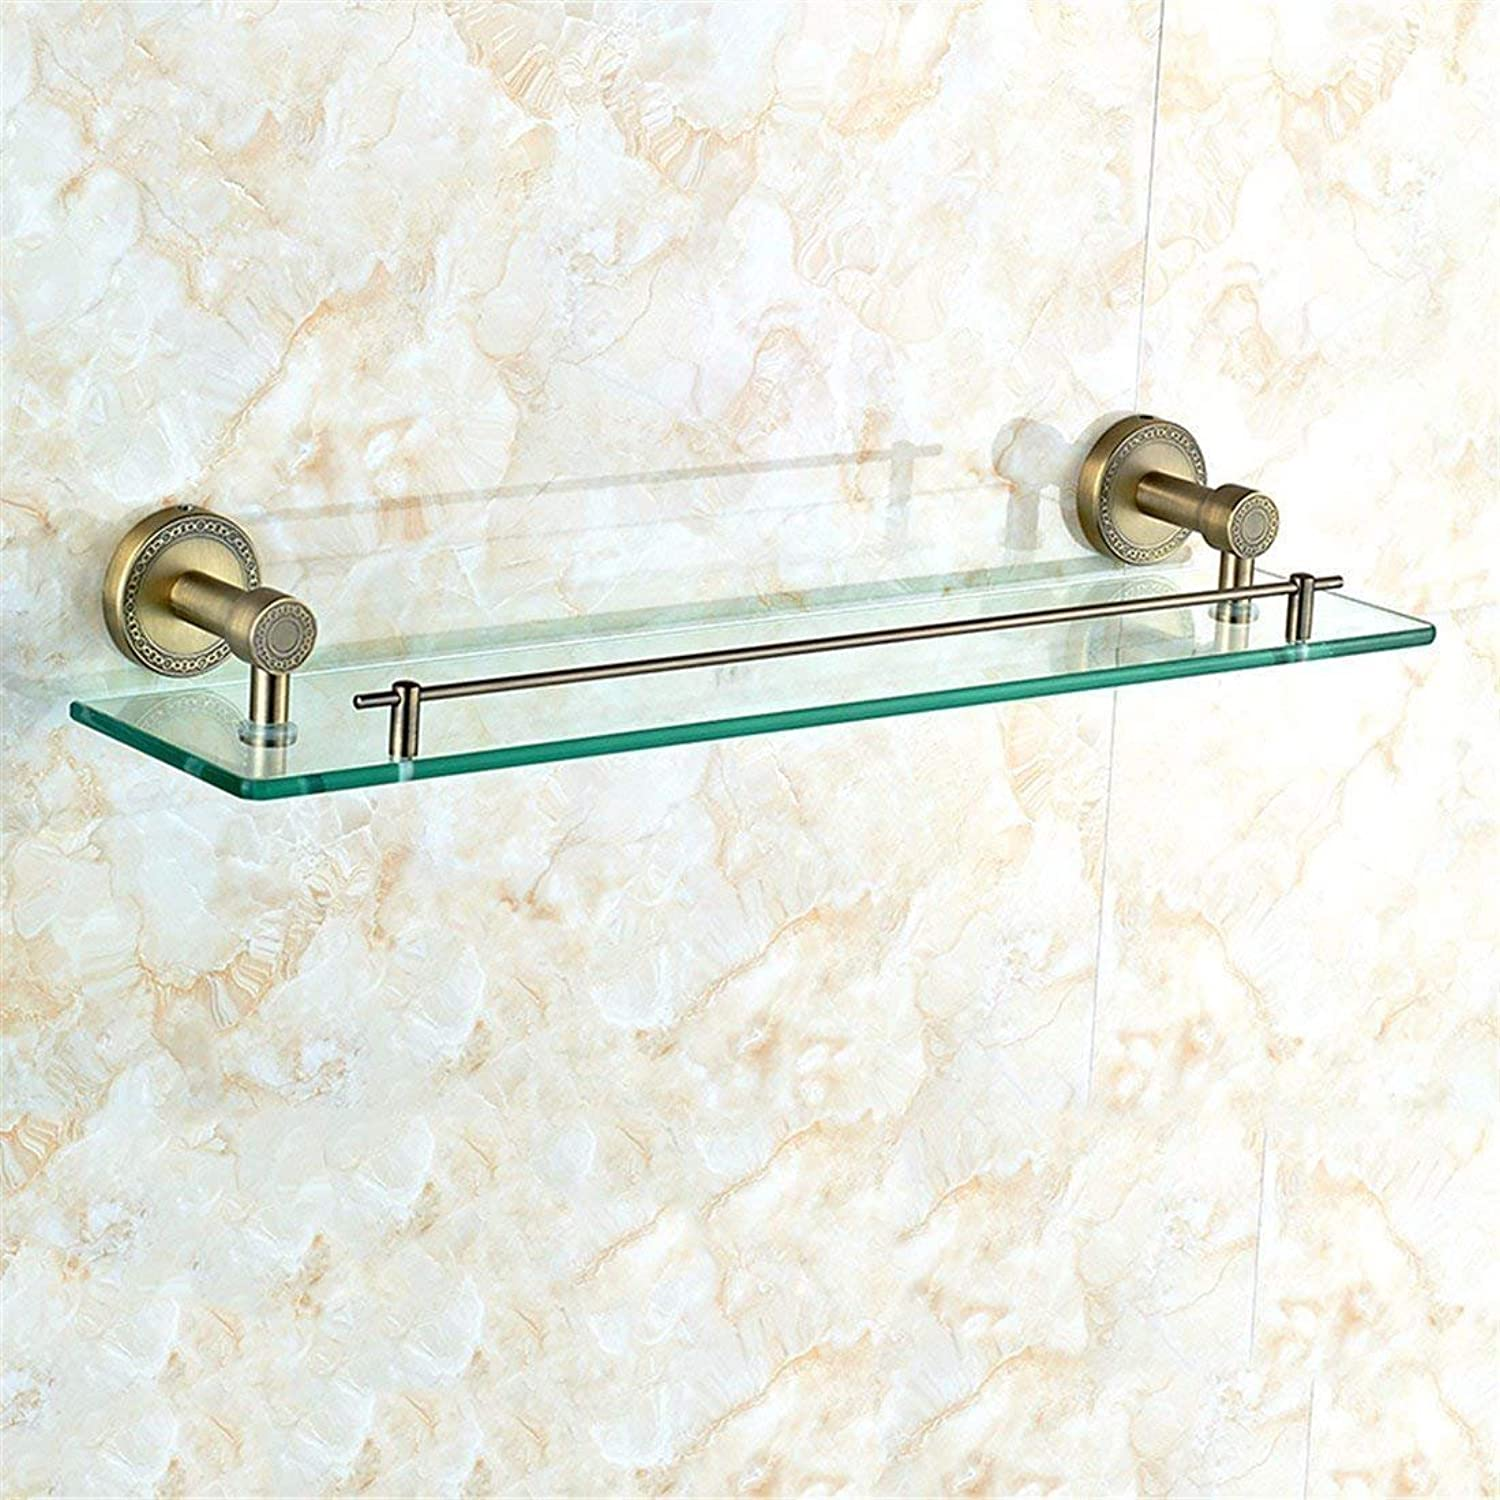 Of Bronze of European Style All Pipes in Antique Copper Pendentif Bathroom,1 Batteries B